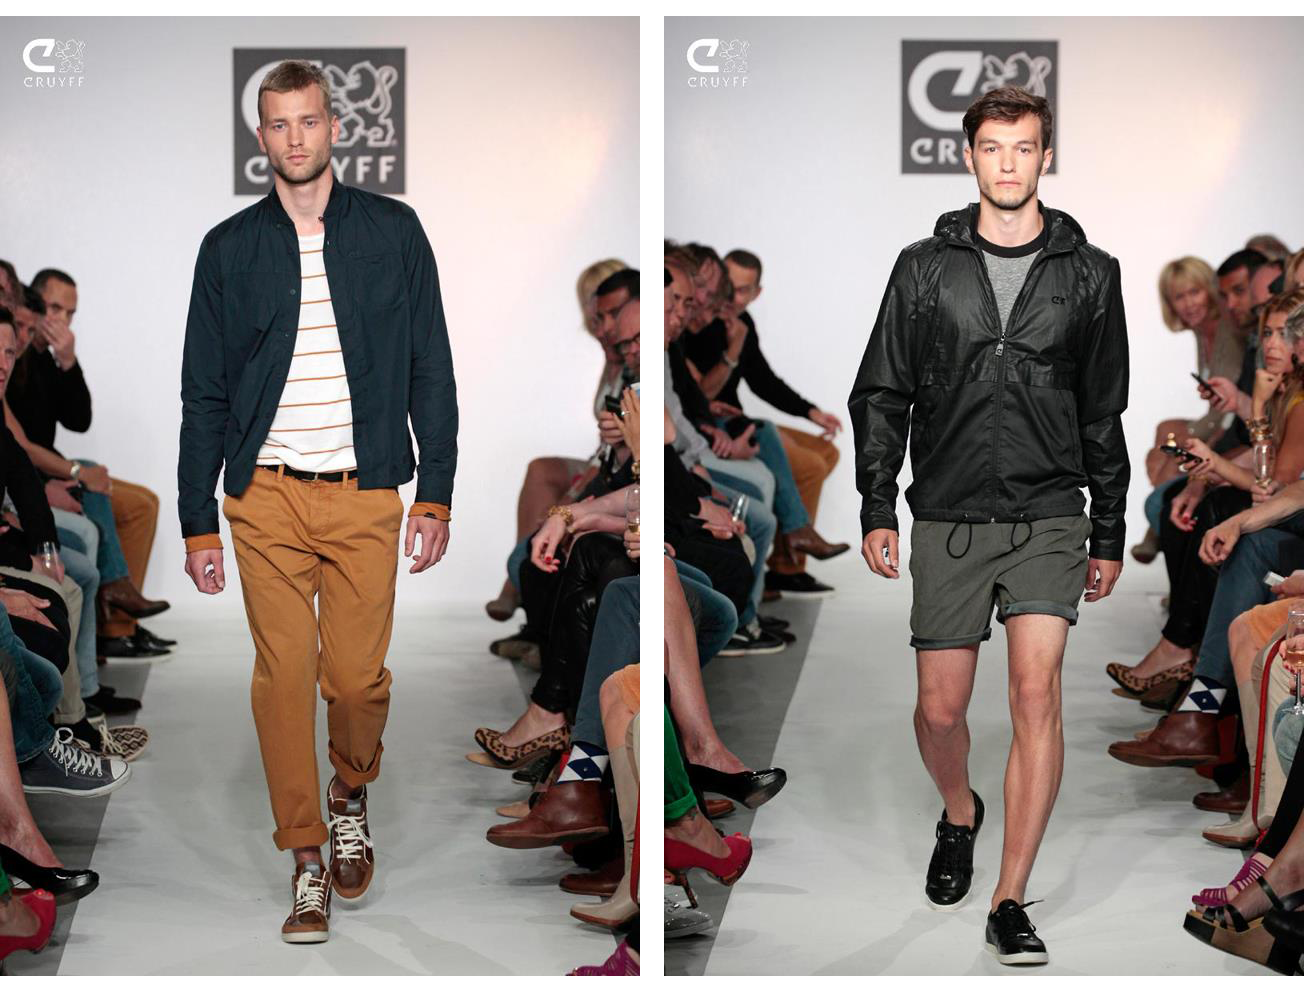 Cruyff Classics Clothing Launch - Catwalk